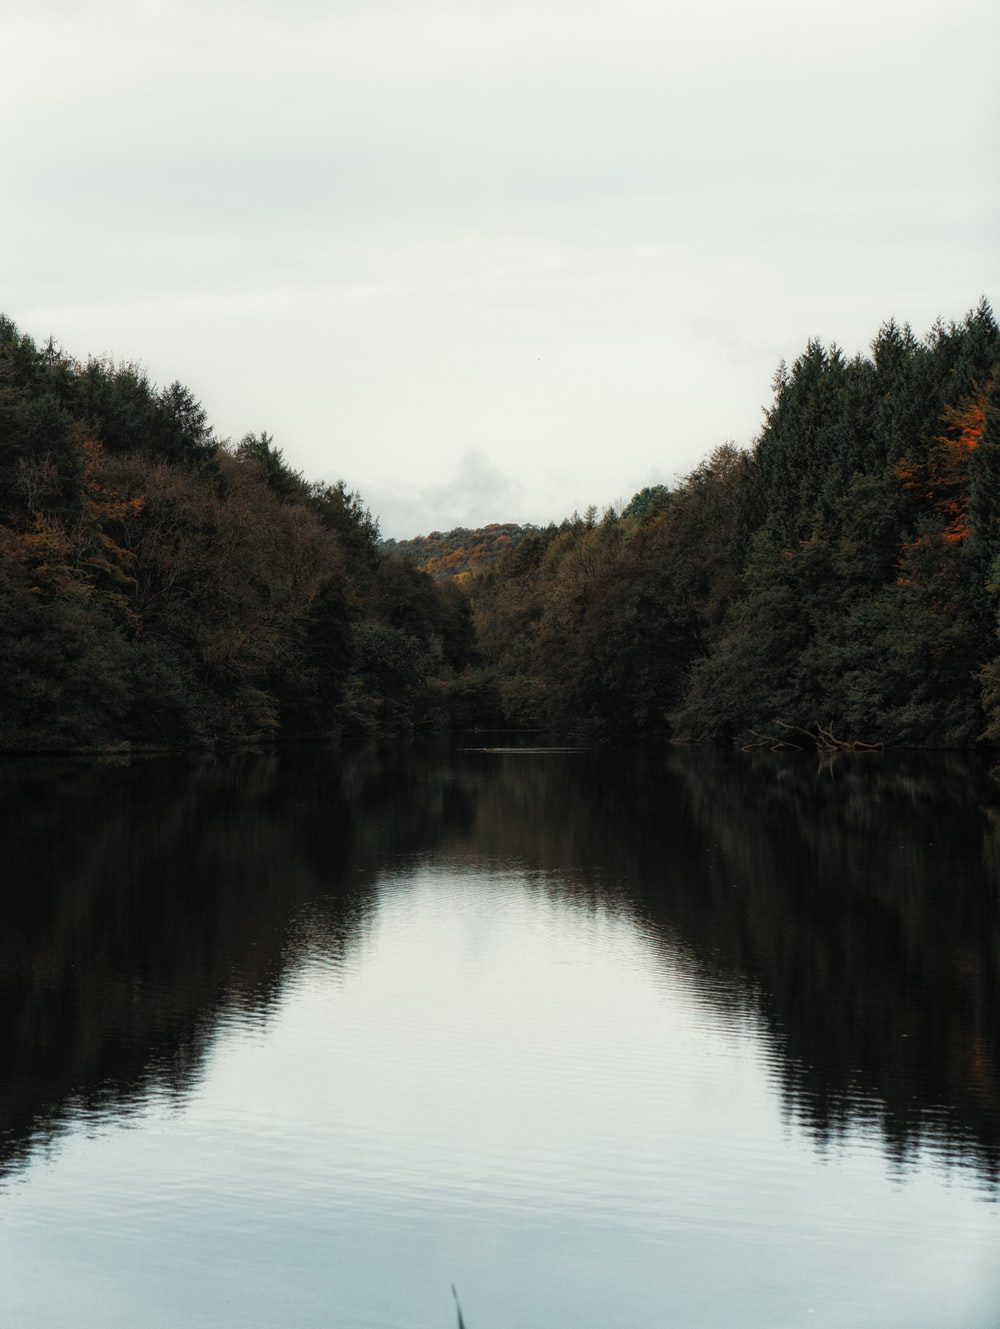 body of water surrounded with trees